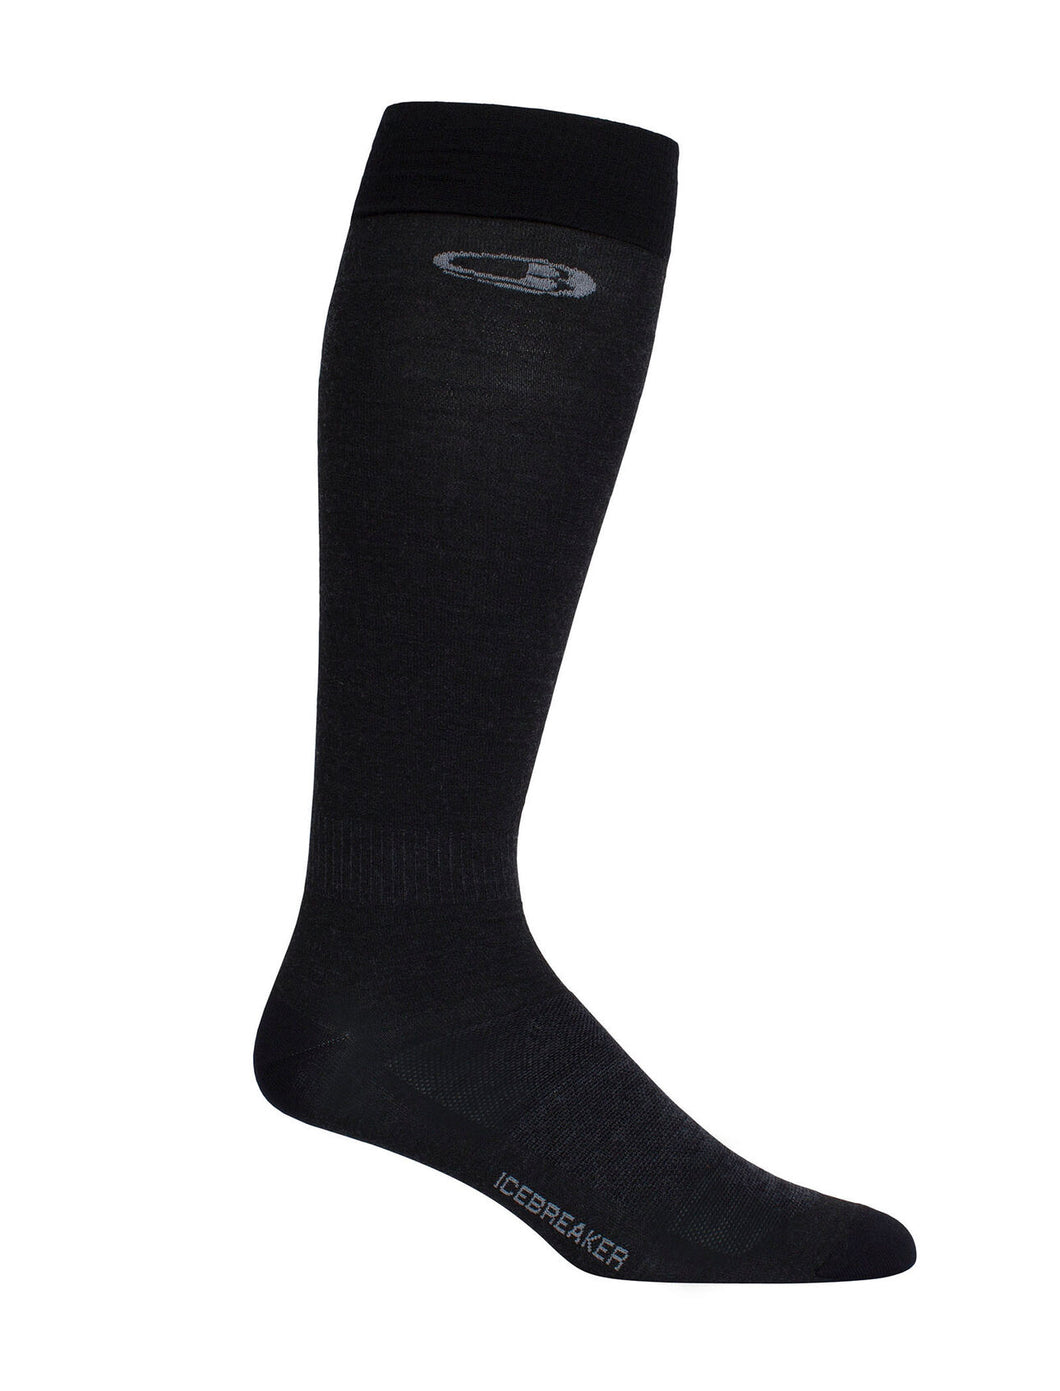 Icebreaker Men's Merino Snow Liner Over The Calf Socks